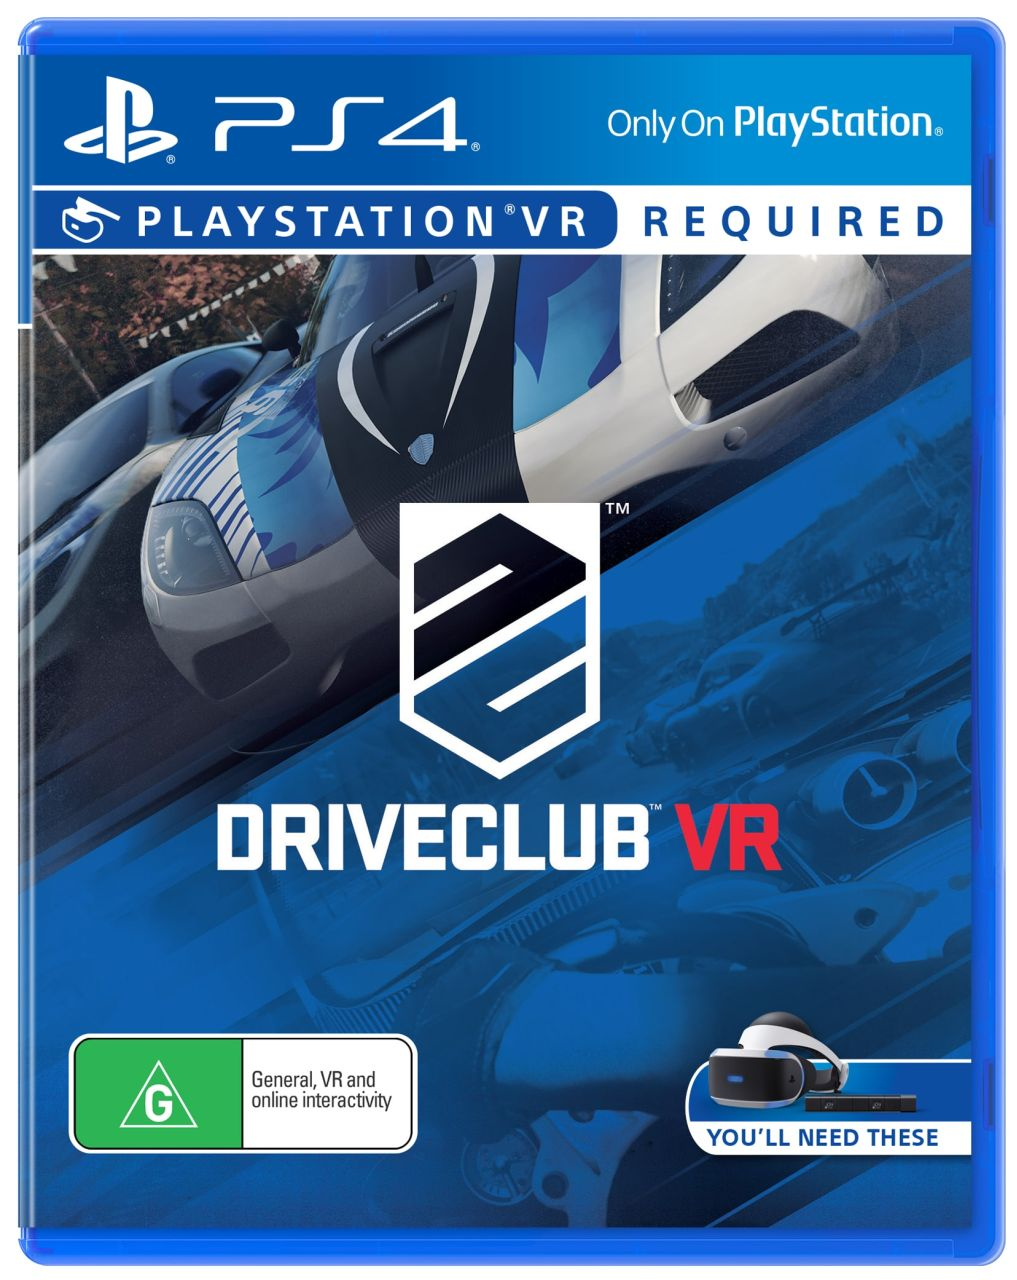 Sony - PS4 Playstation VR DriveClub Game